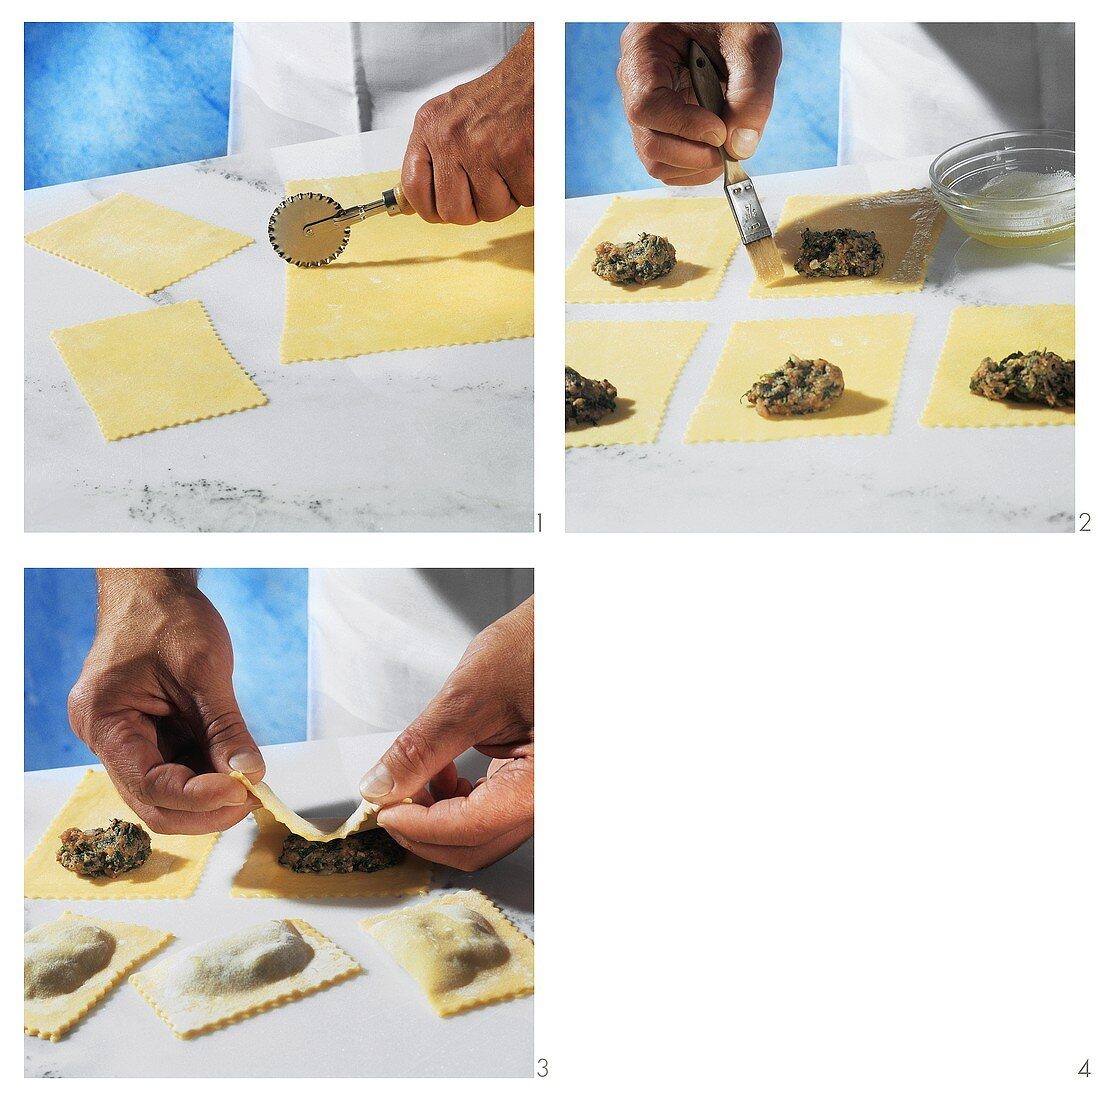 Making ravioli with mince filling